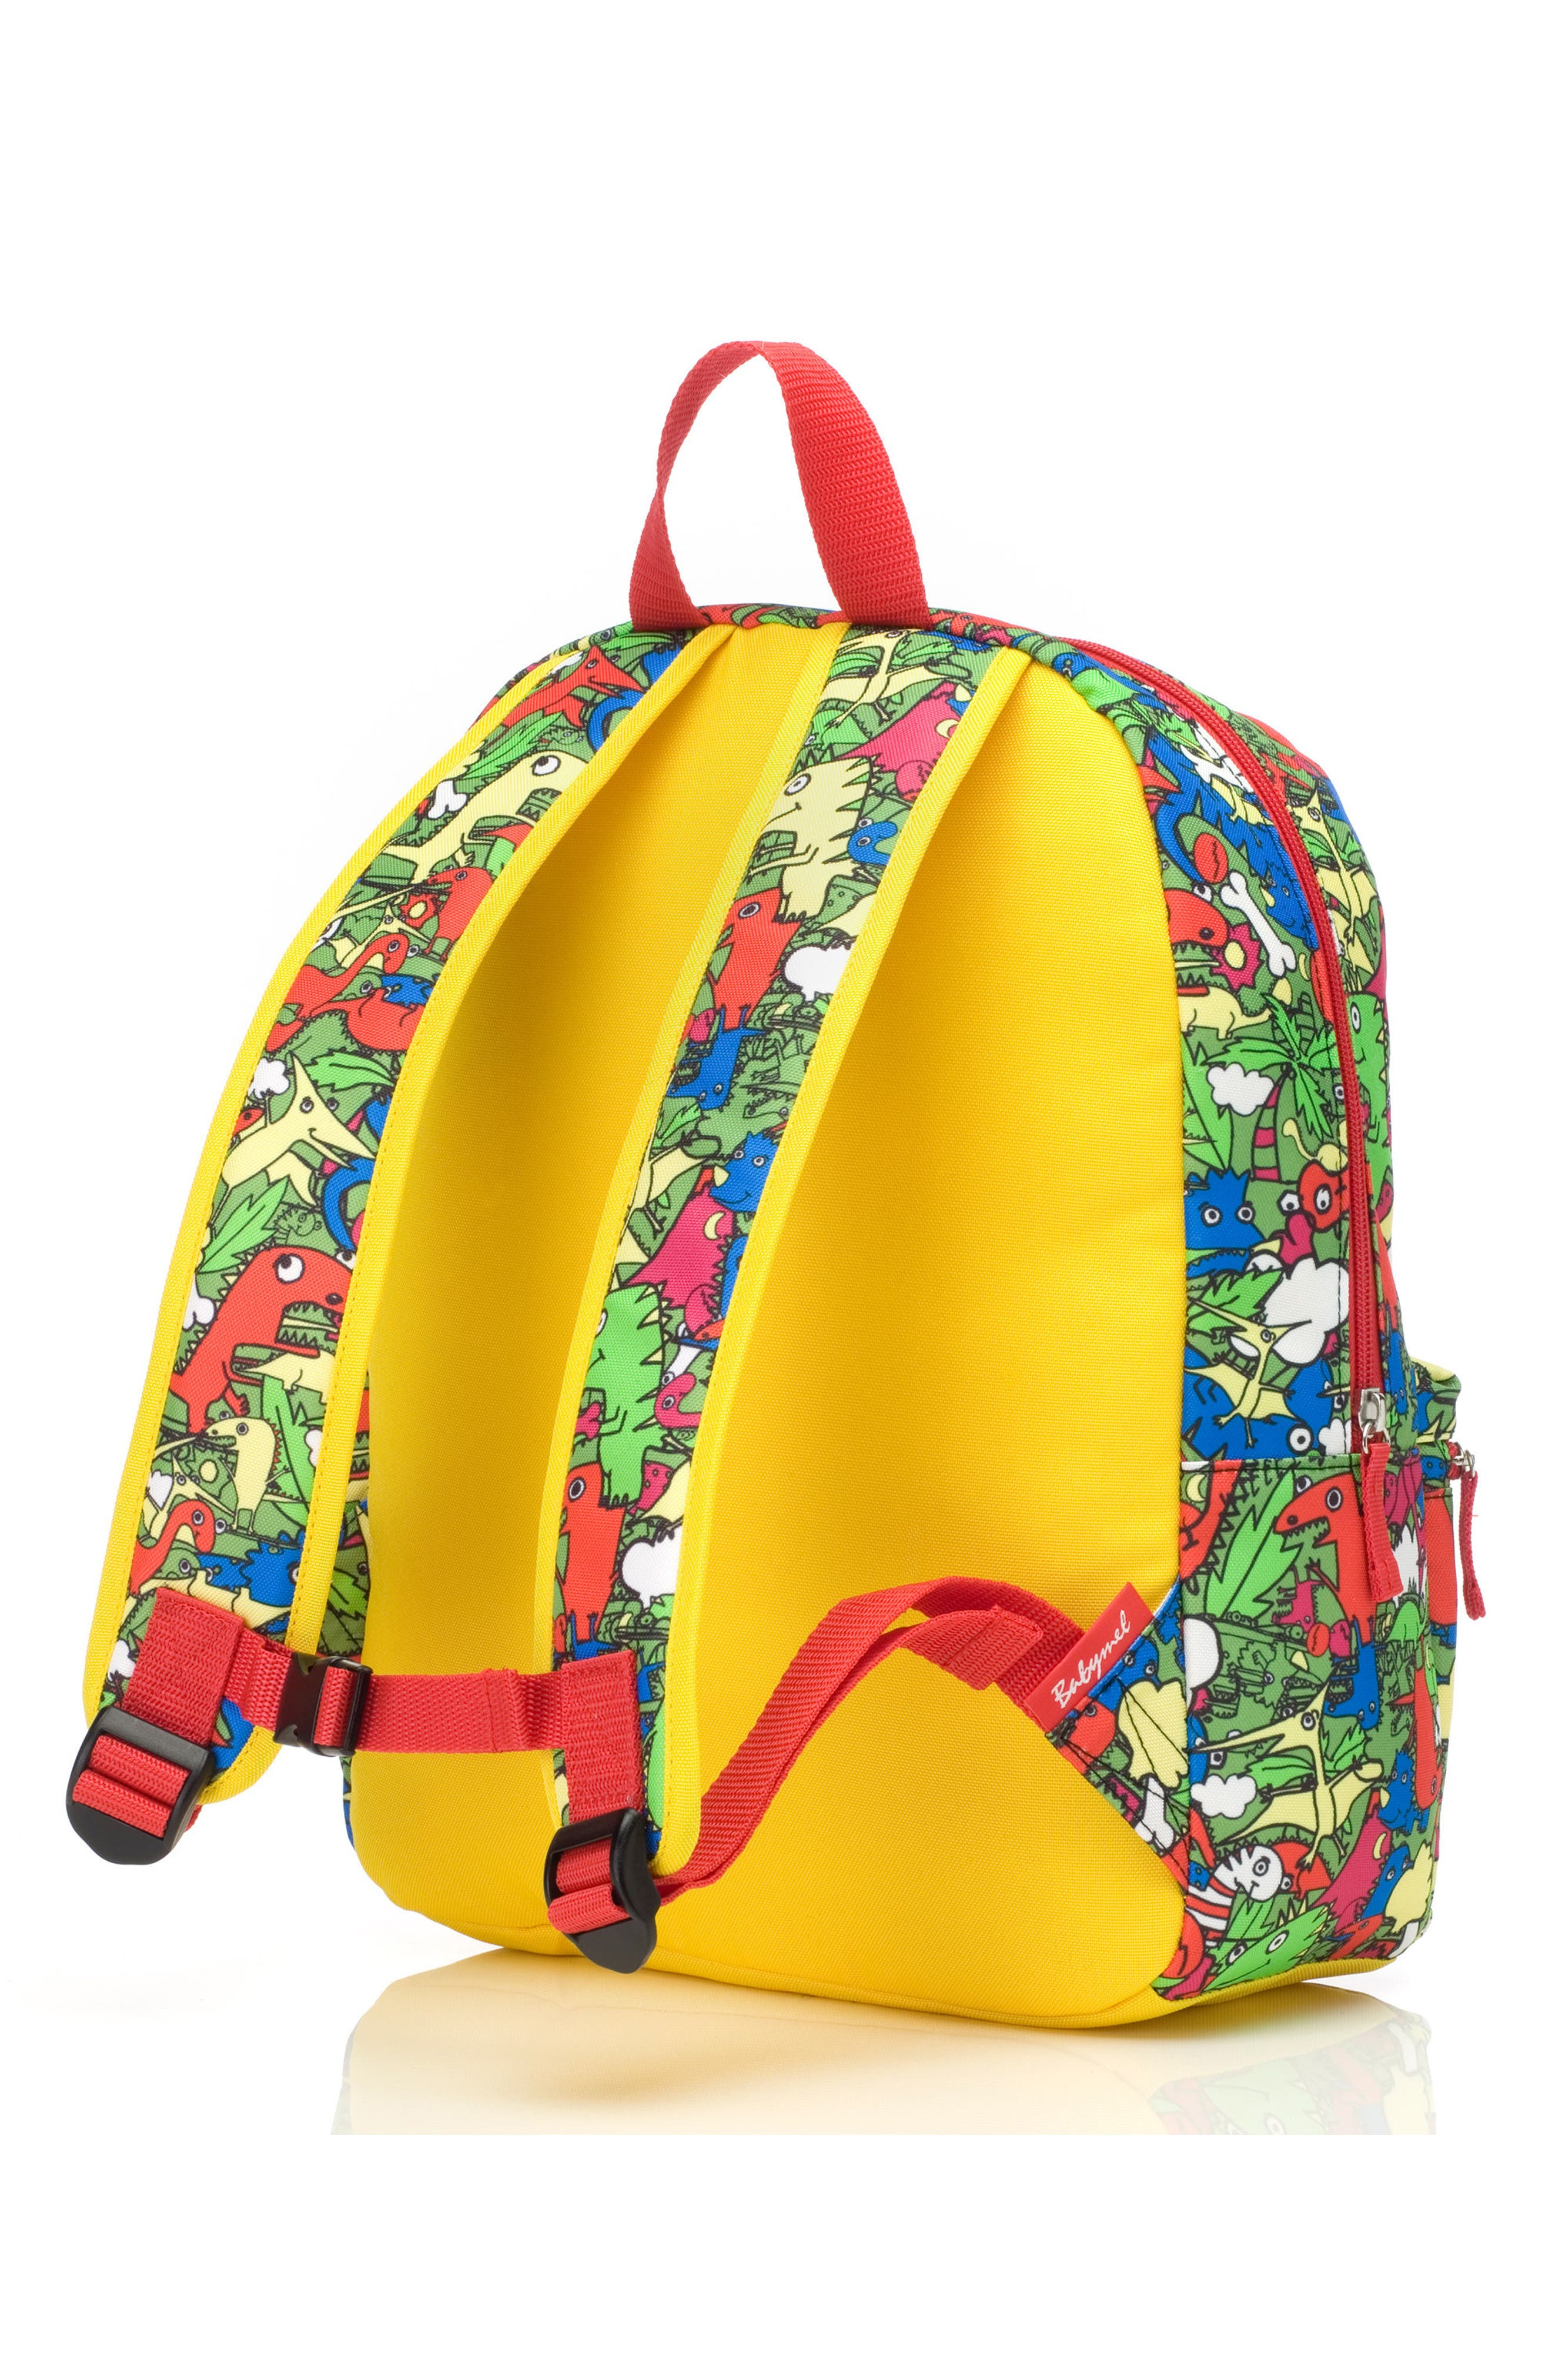 Zip & Zoe Junior Backpack Set,                             Alternate thumbnail 4, color,                             Dino Multi/ Dylan